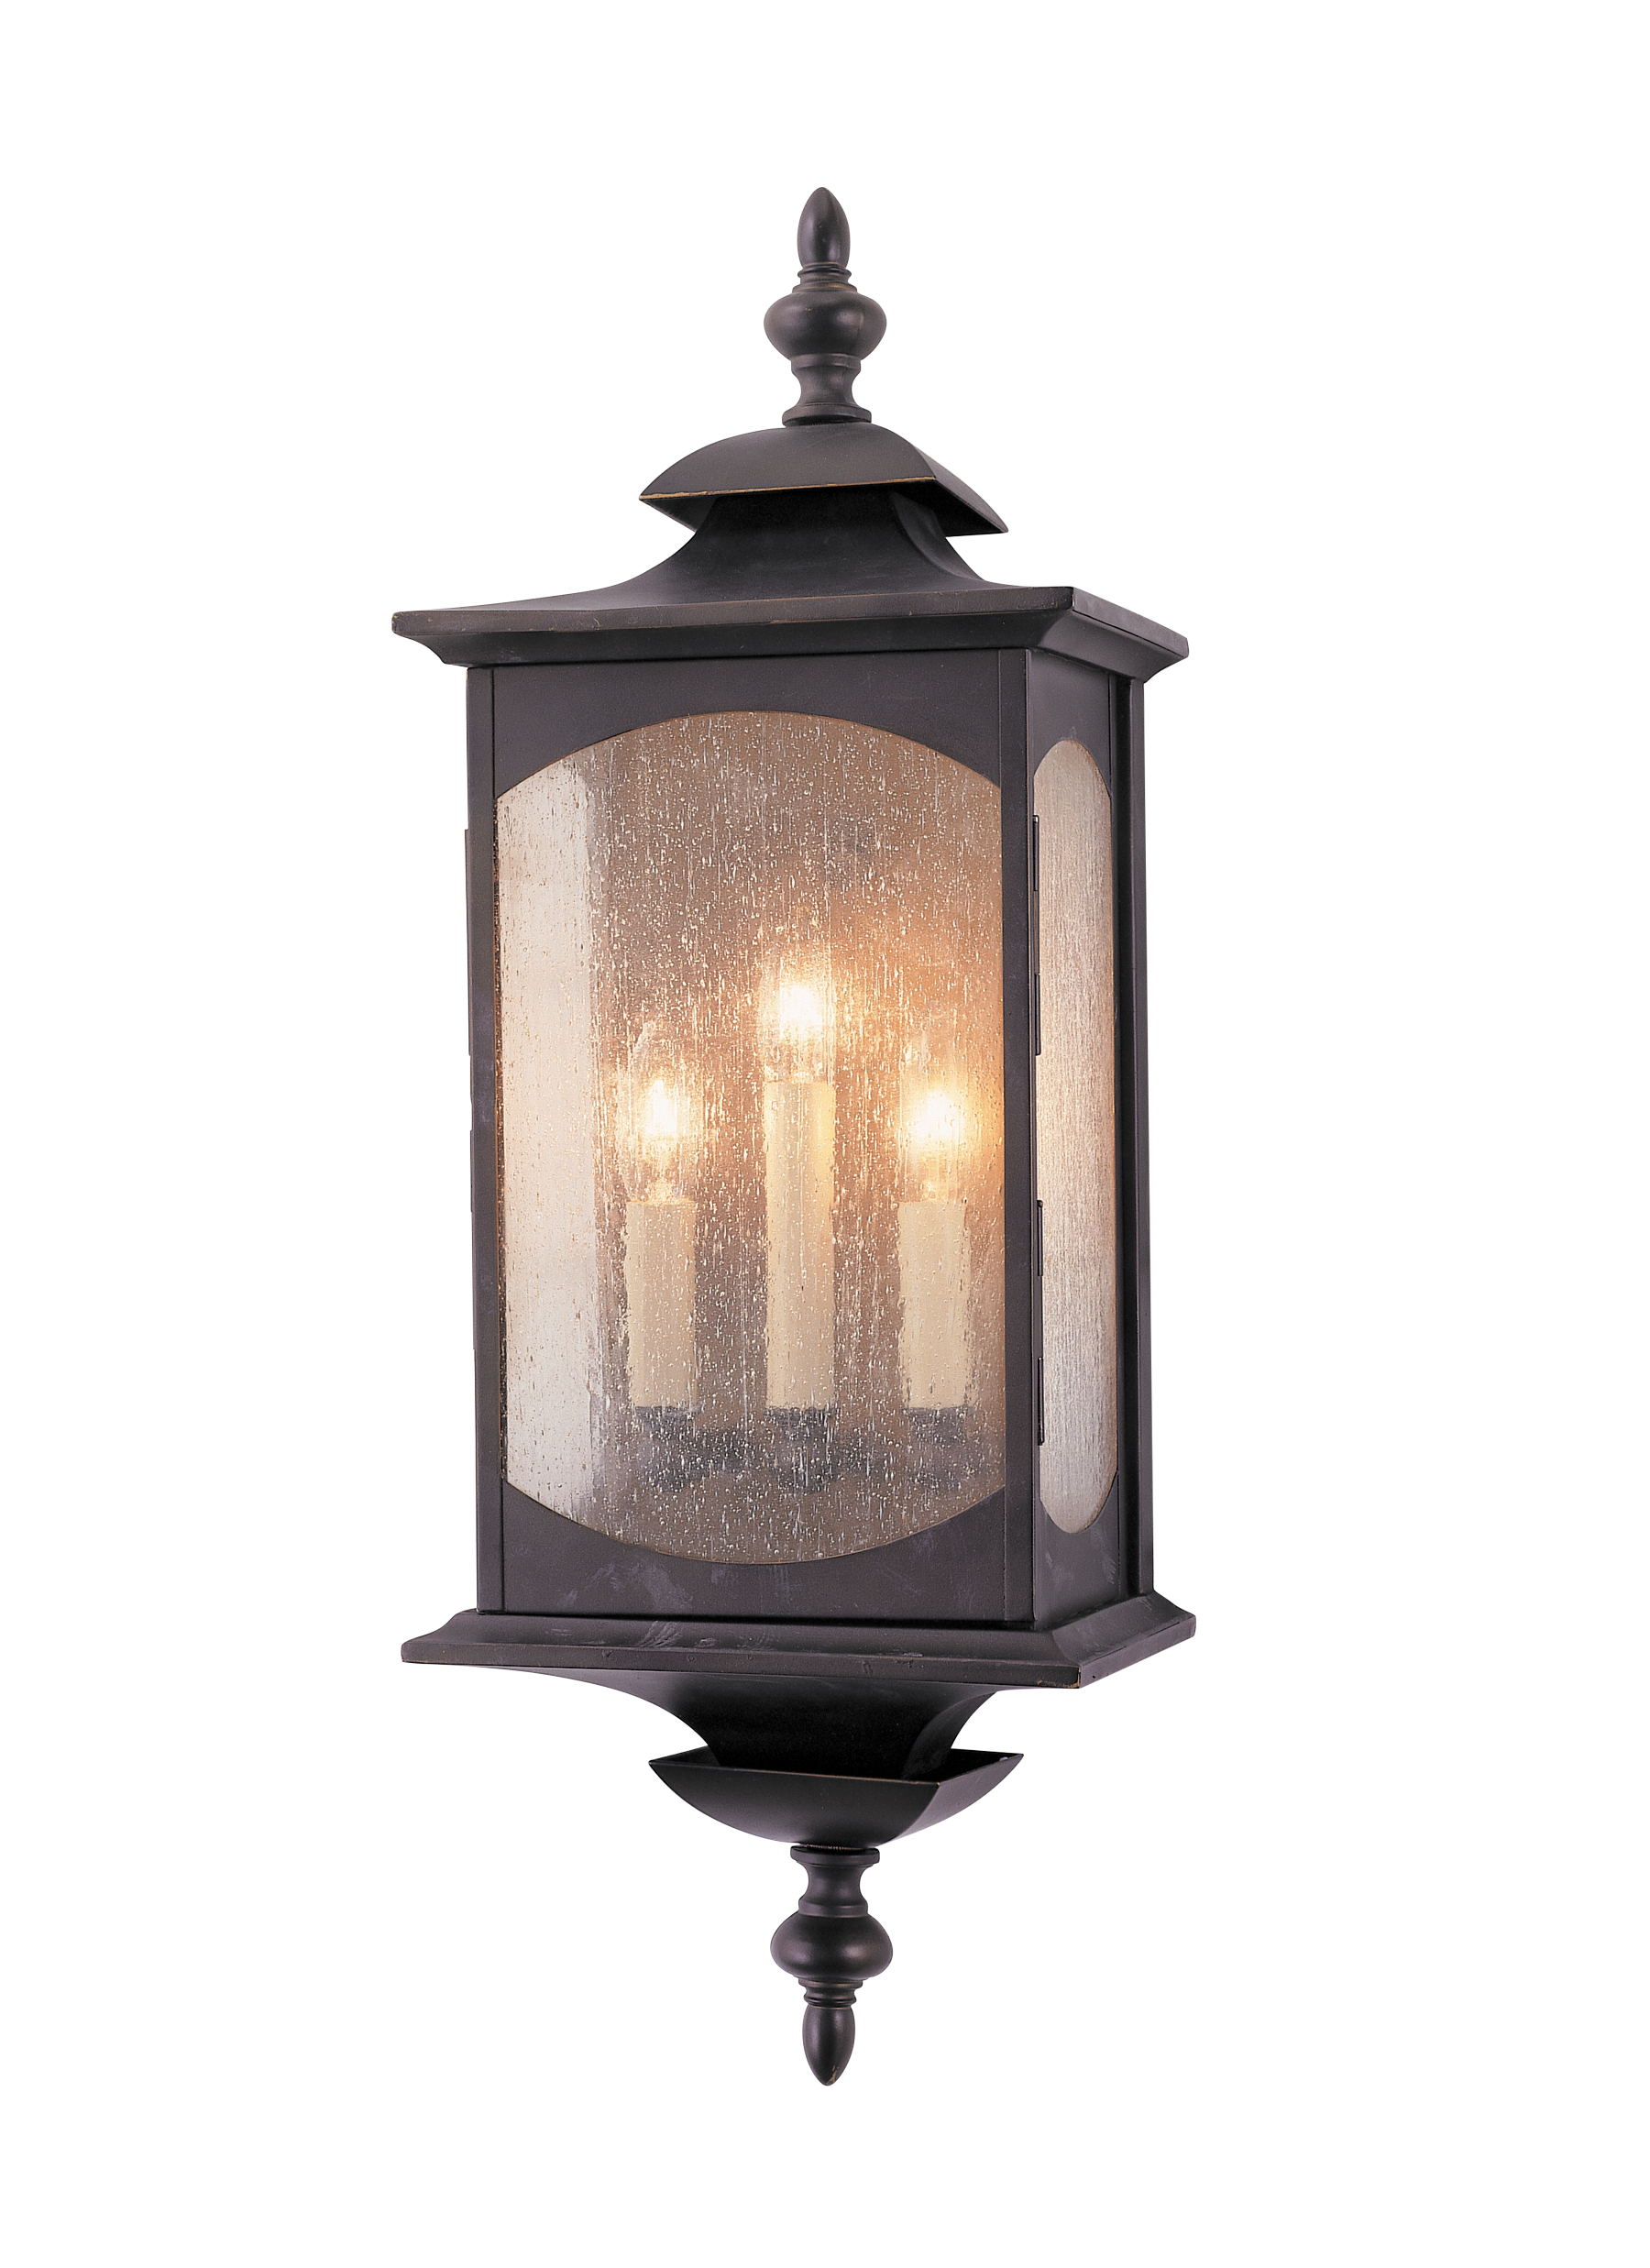 Murray Feiss Outdoor Lighting Ol2602orb3 light wall lanternoil rubbed bronze loading zoom workwithnaturefo